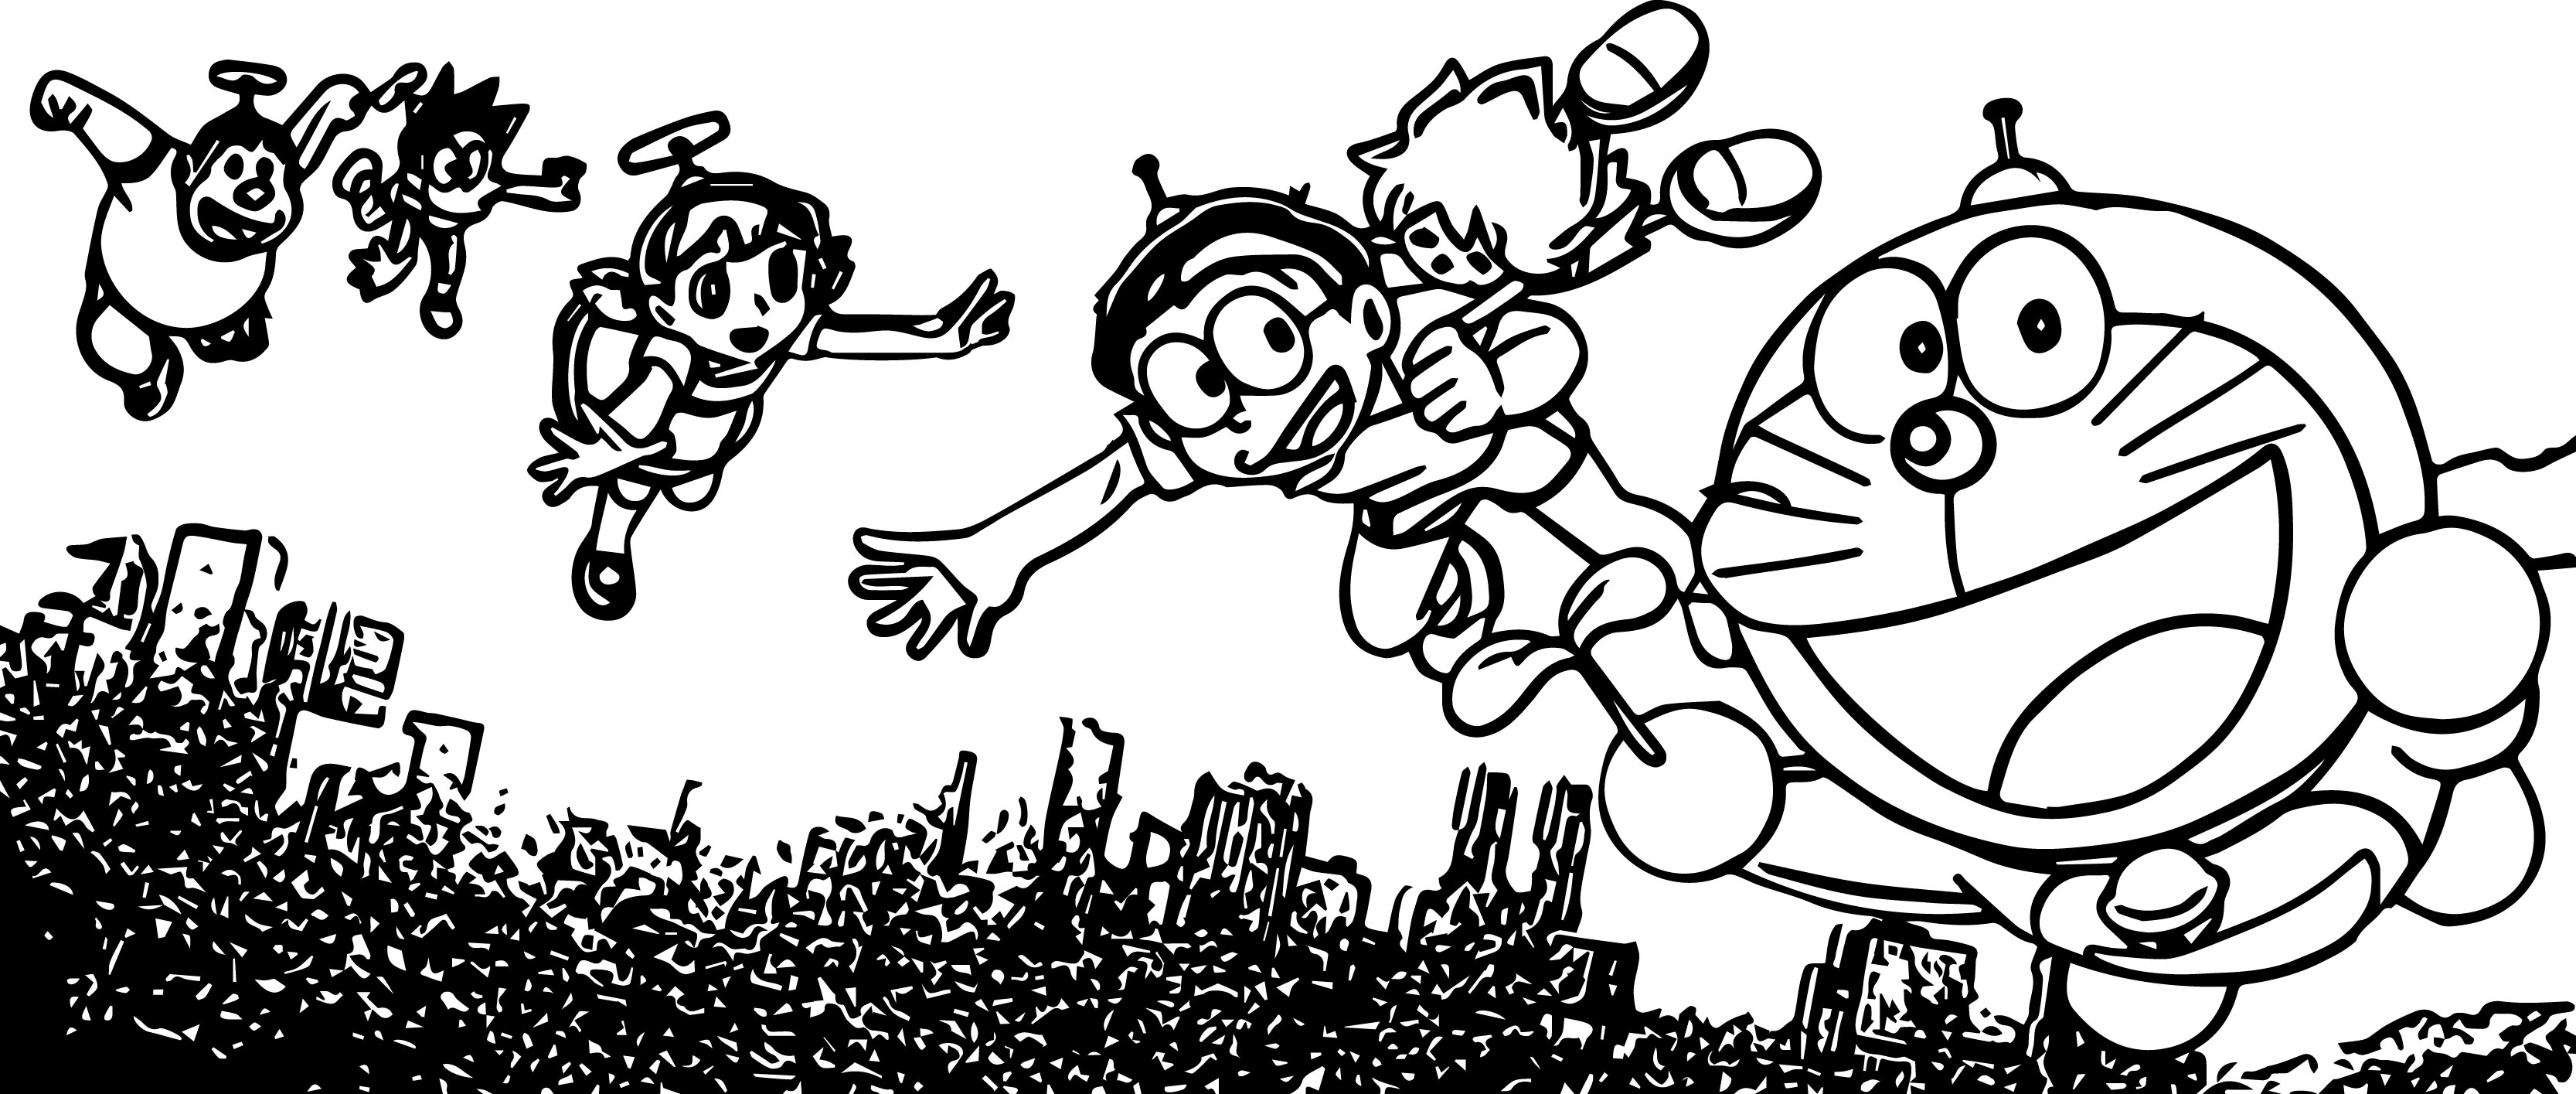 Doraemon And Friends Fly Coloring Page